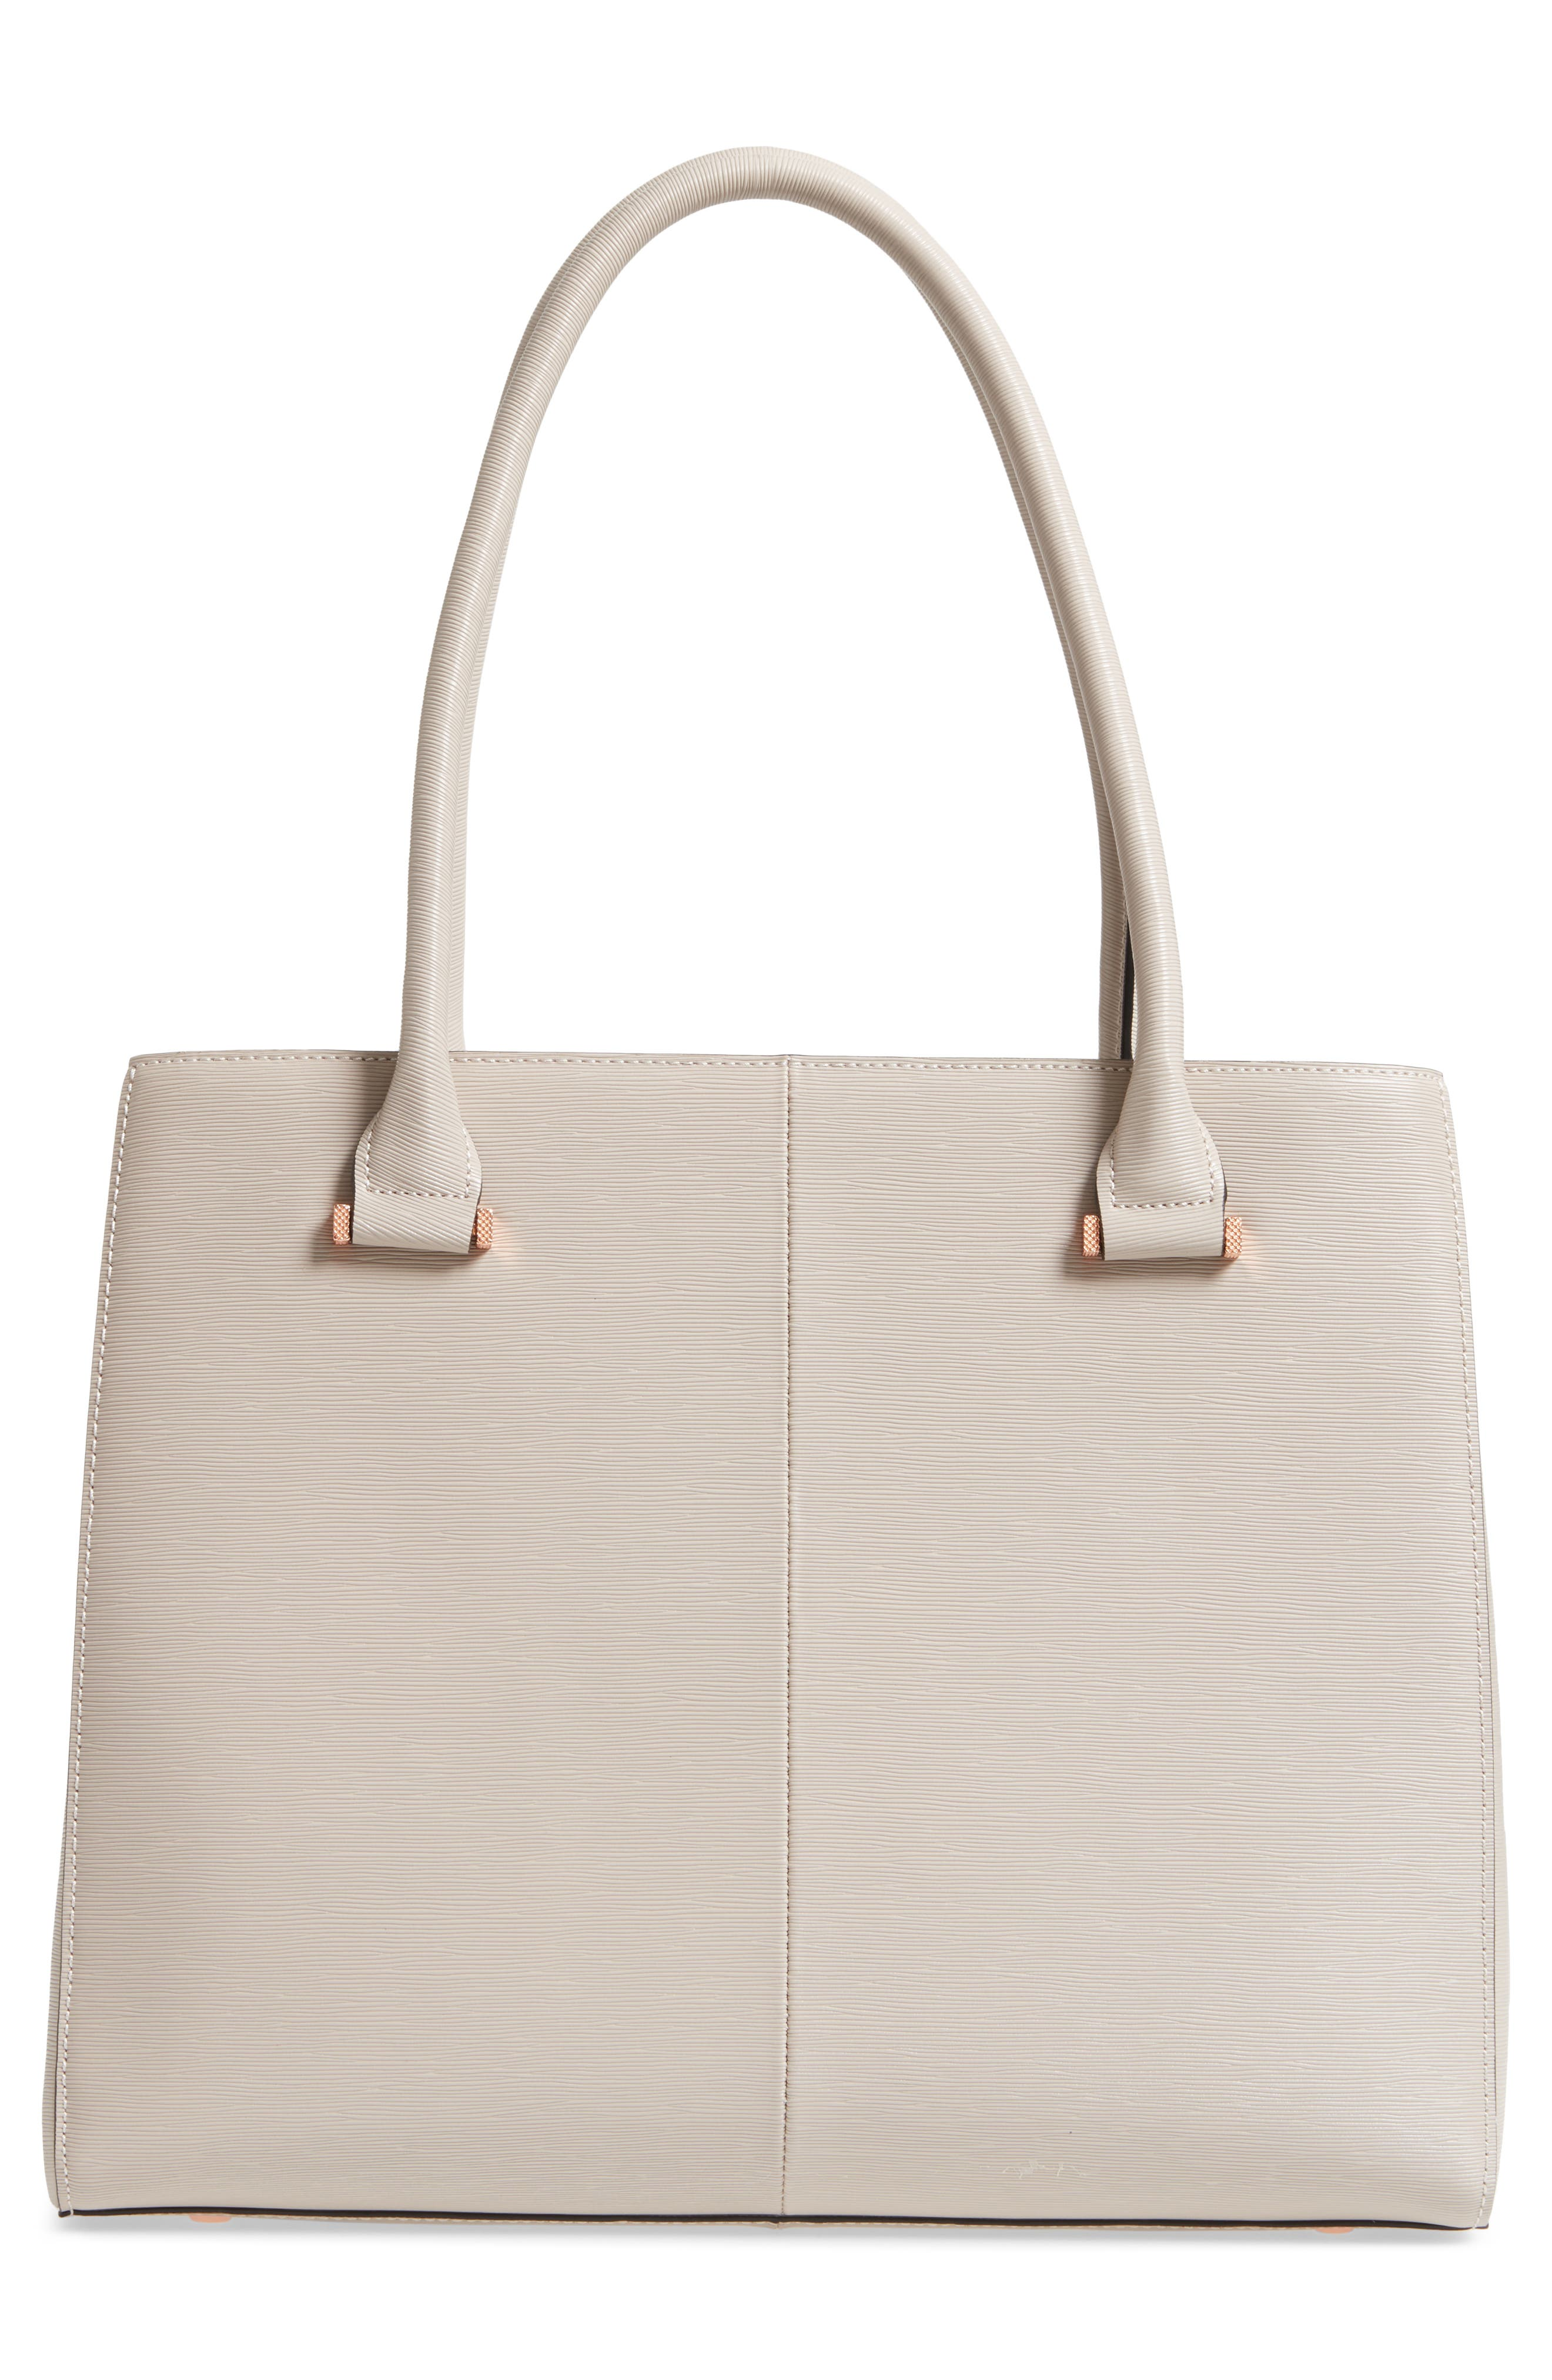 Callaa Bow Leather Shopper,                             Alternate thumbnail 3, color,                             Taupe